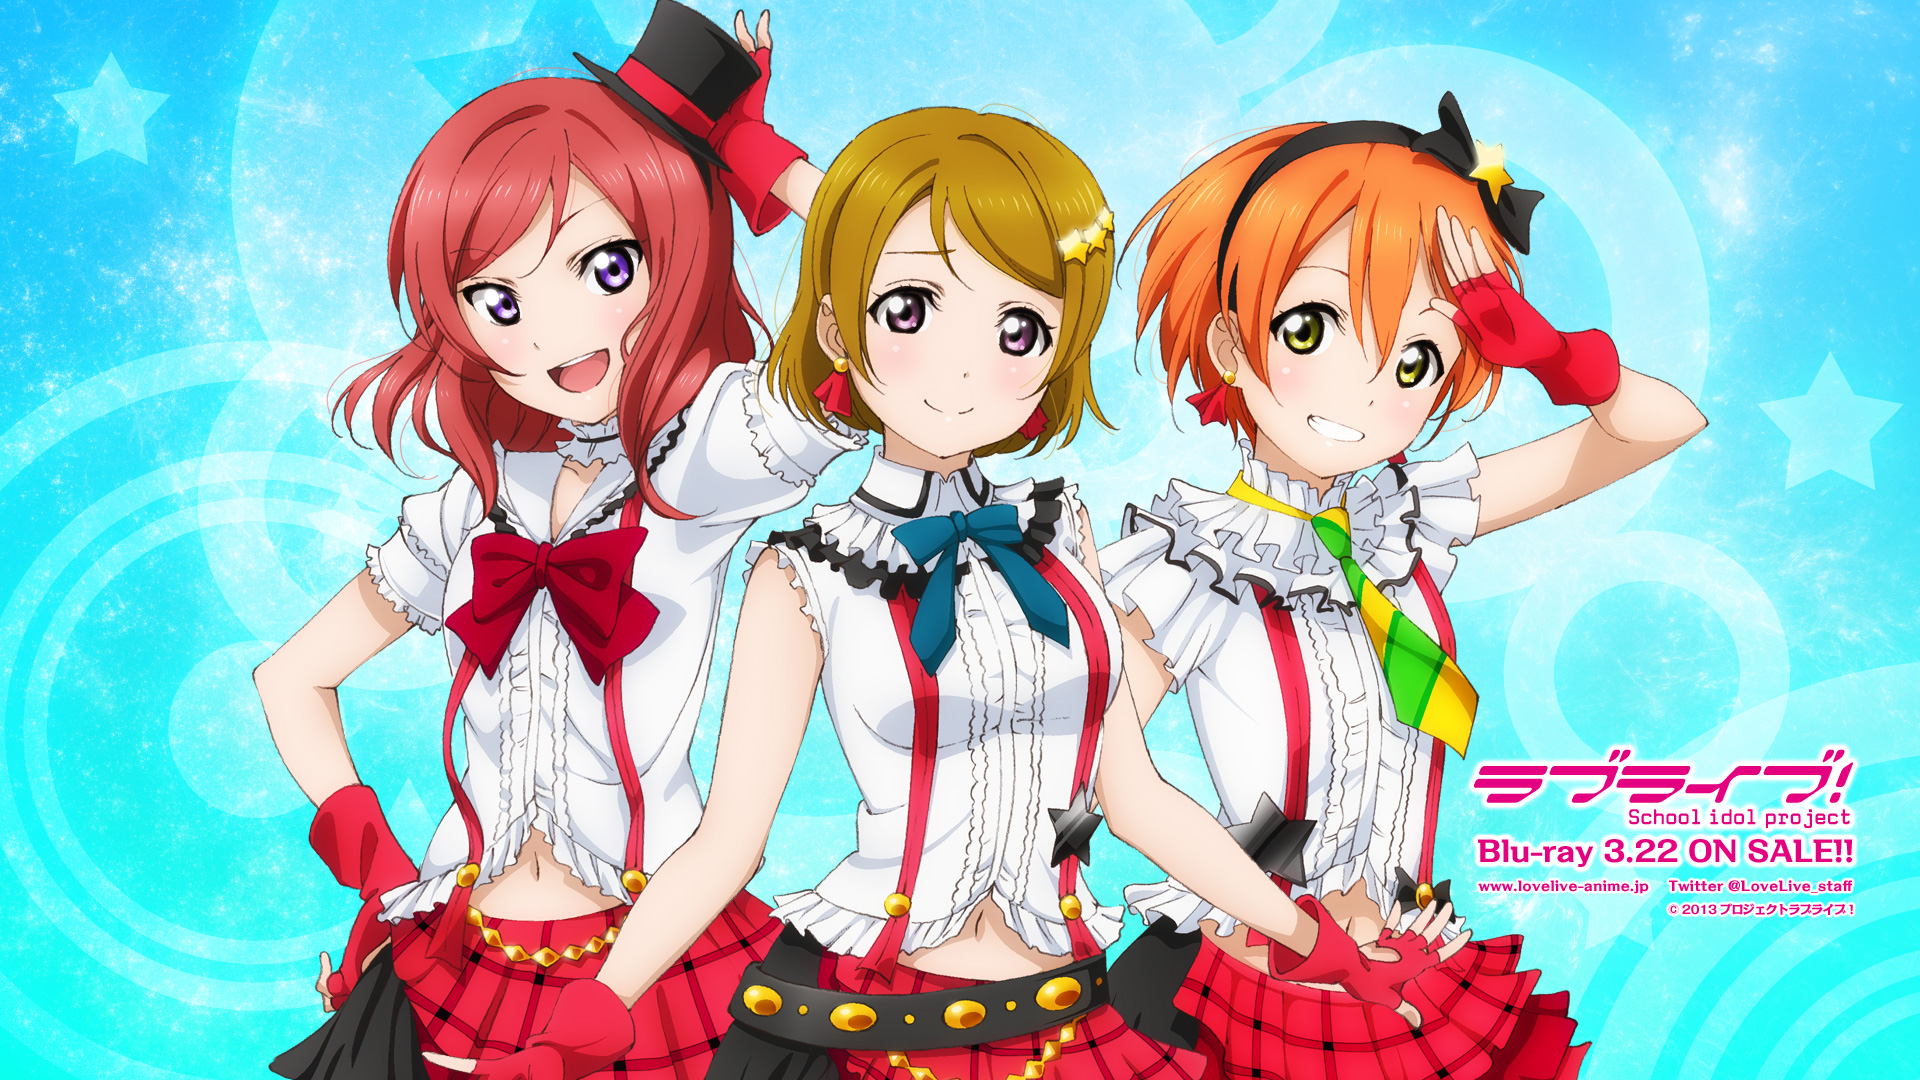 Love Live! HD Wallpaper #1437742 - Zerochan Anime Image Board